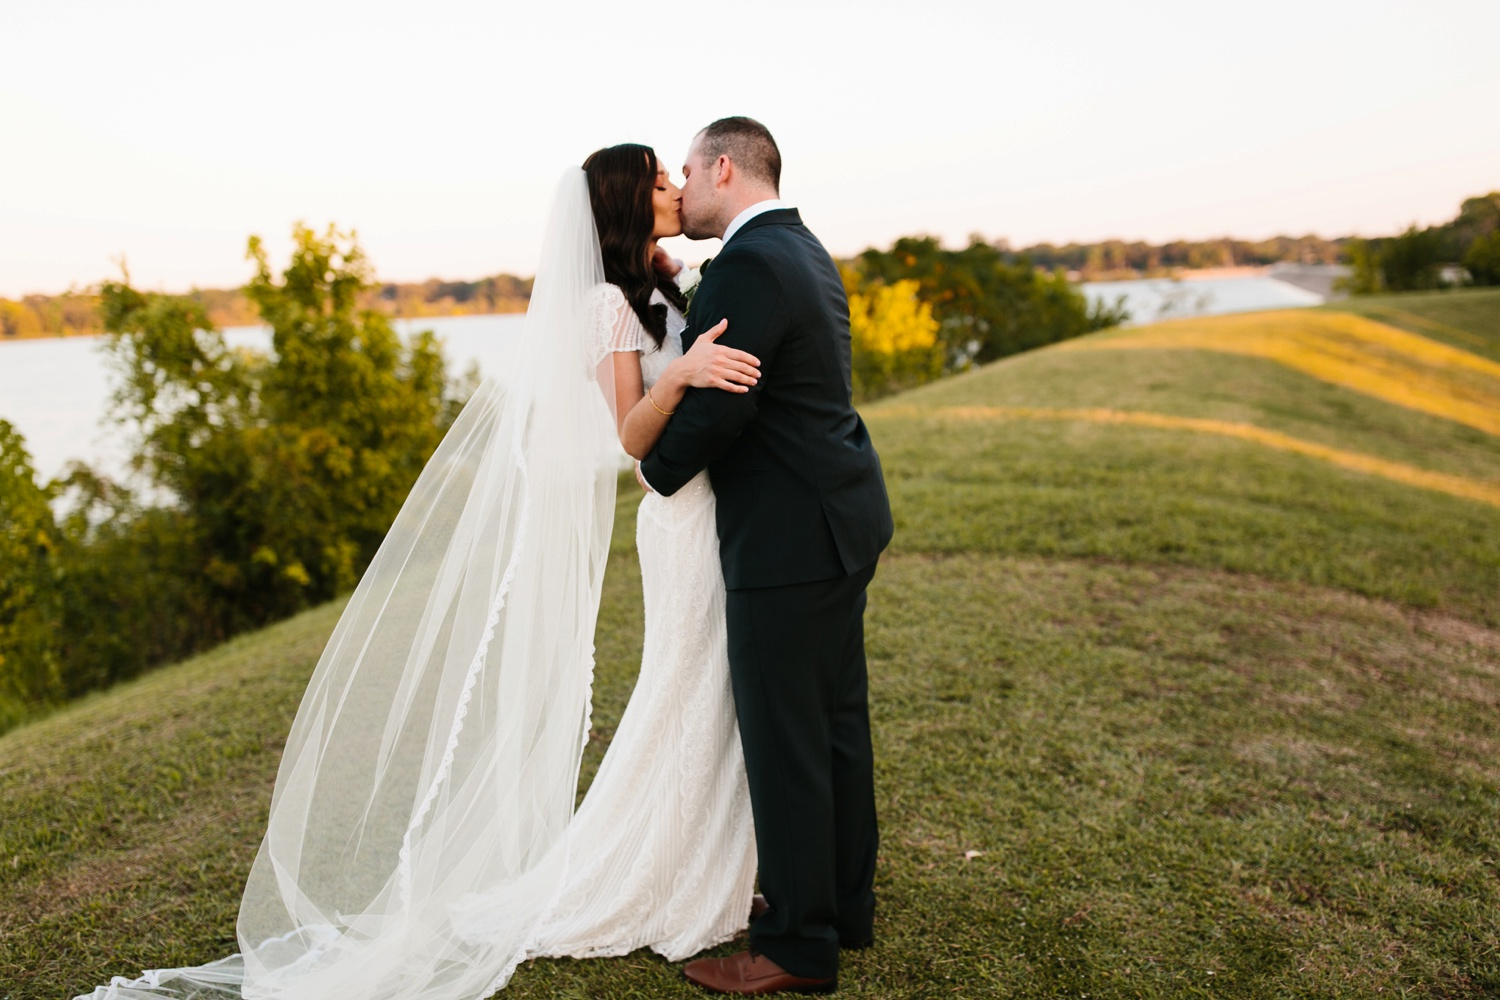 Kadee + Tyler | a raw, emotional wedding at the Filter Building on White Rock Lake in Dallas, TX by North Texas Wedding Photographer, Rachel Meagan Photography 173